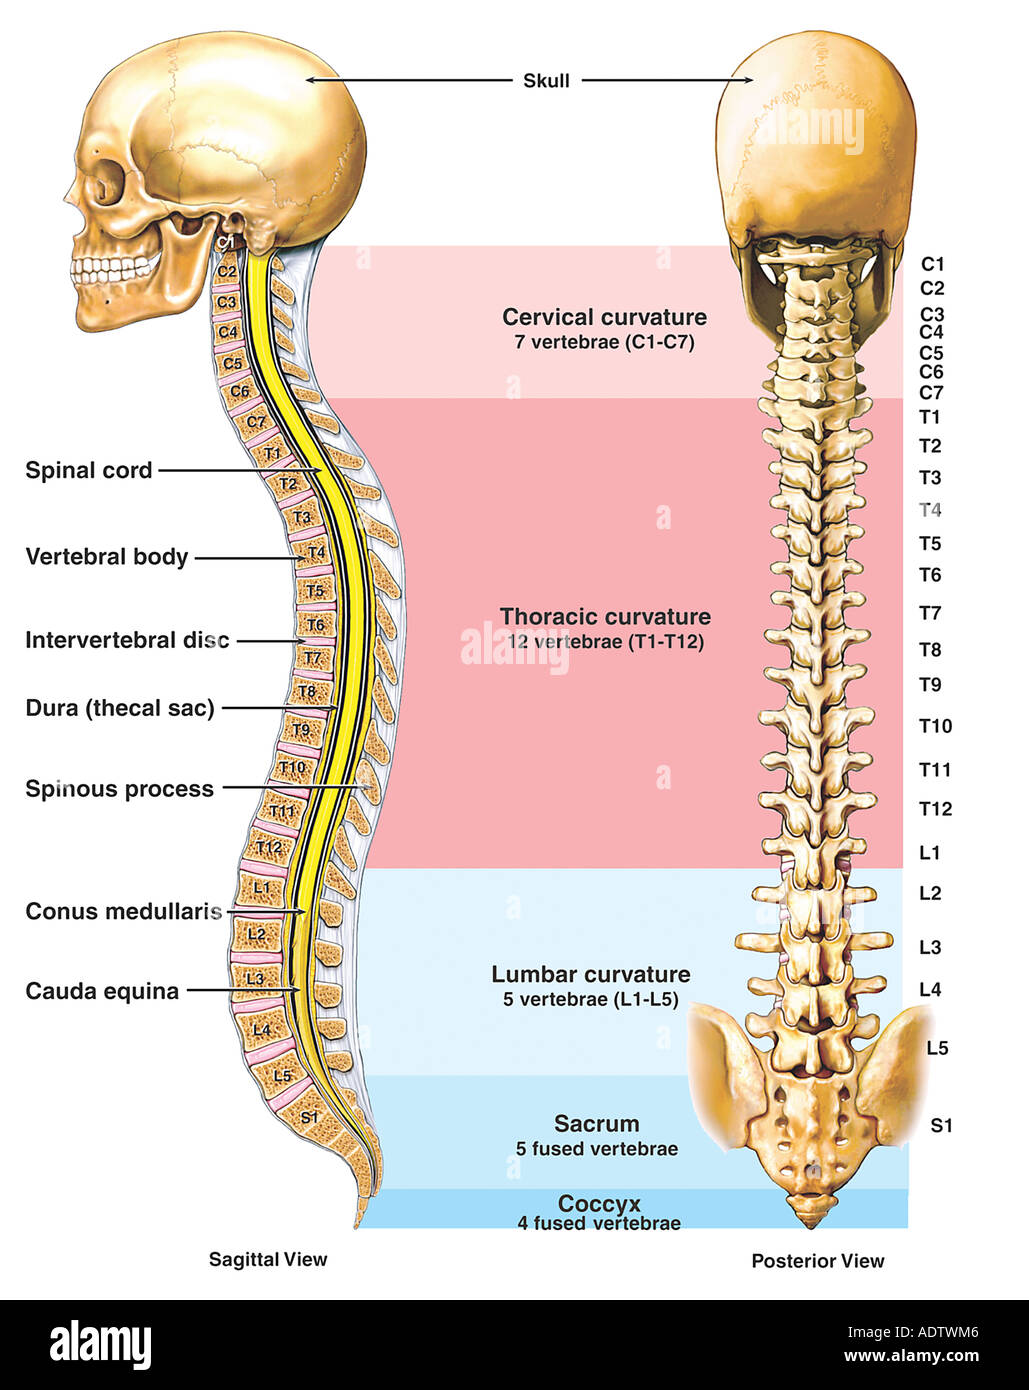 Anatomy of the Vertebral Column (Spine Stock Photo: 7710469 - Alamy